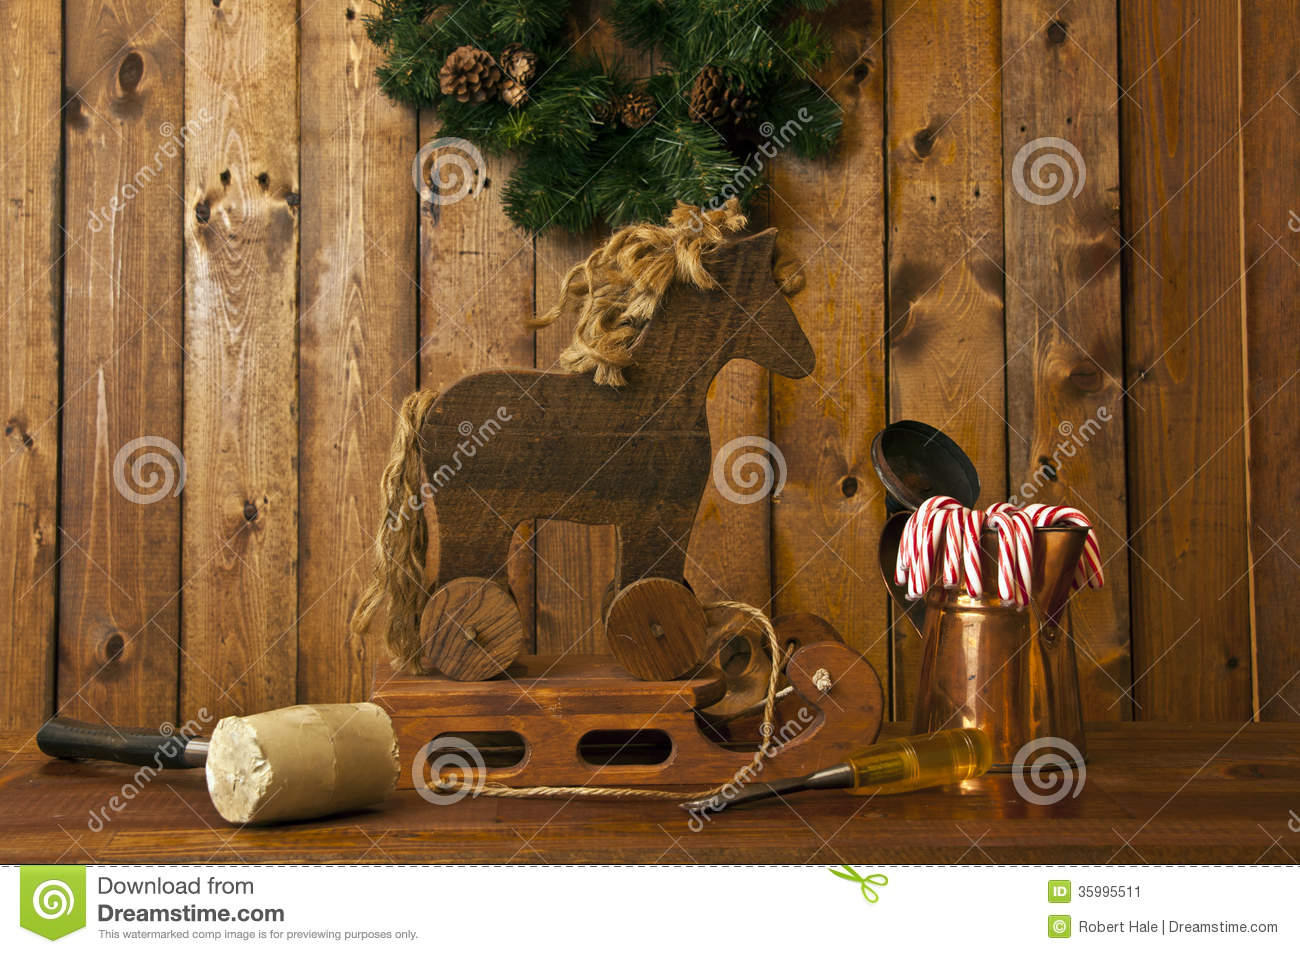 ... and horse with rustic wood background and candy canes in foreground